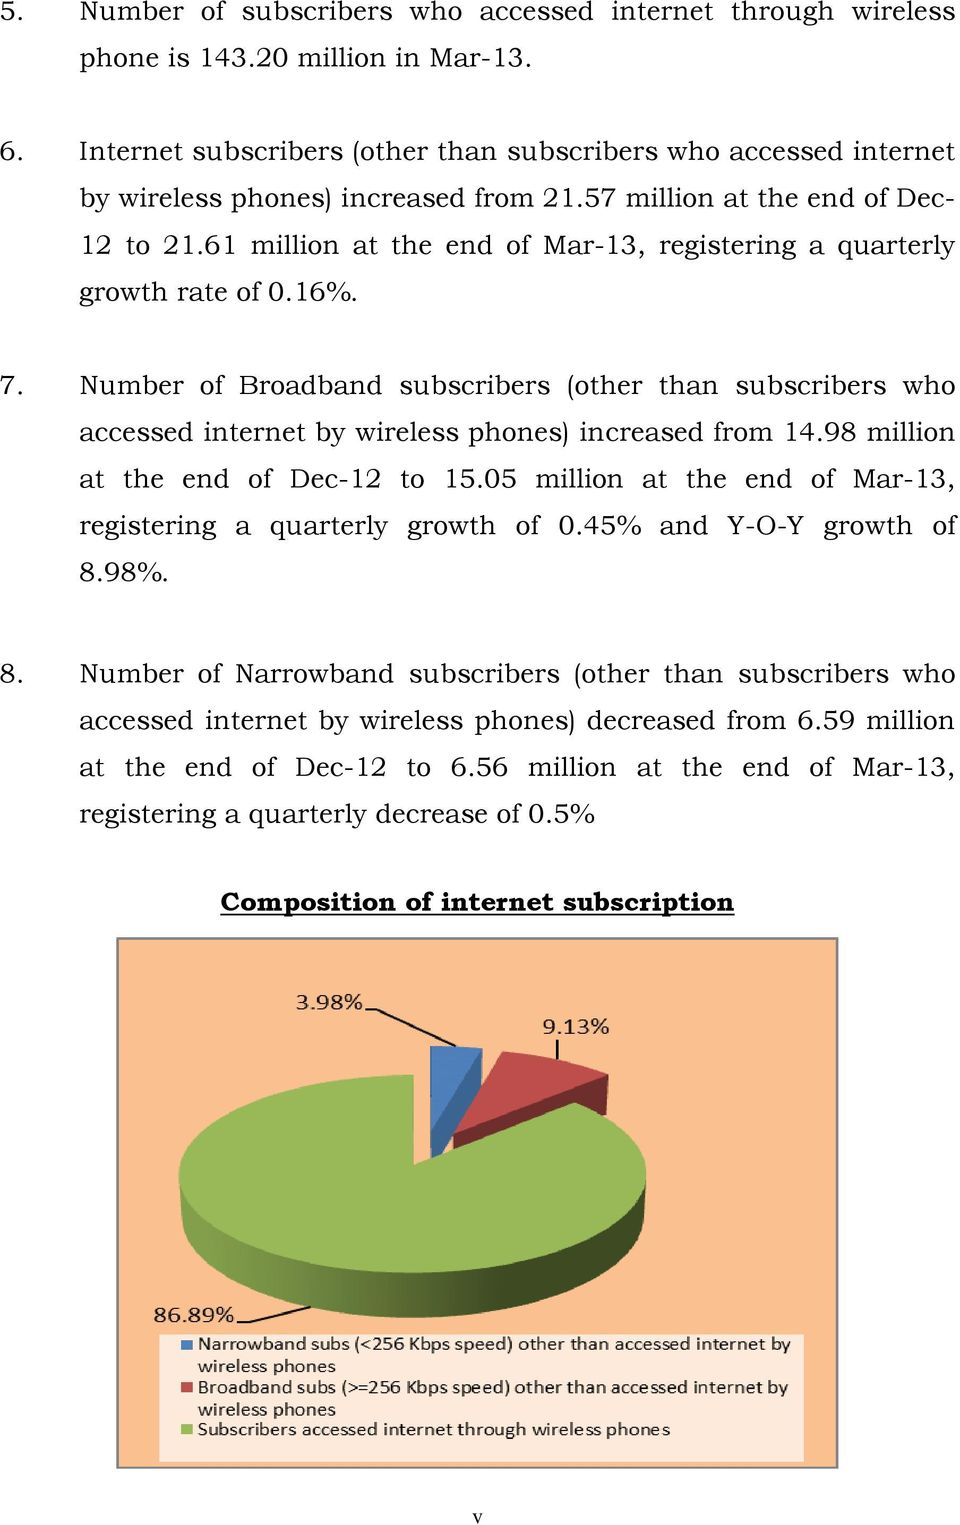 61 million at the end of Mar-13, registering a quarterly growth rate of 0.16%. 7. Number of Broadband subscribers (other than subscribers who accessed internet by wireless phones) increased from 14.